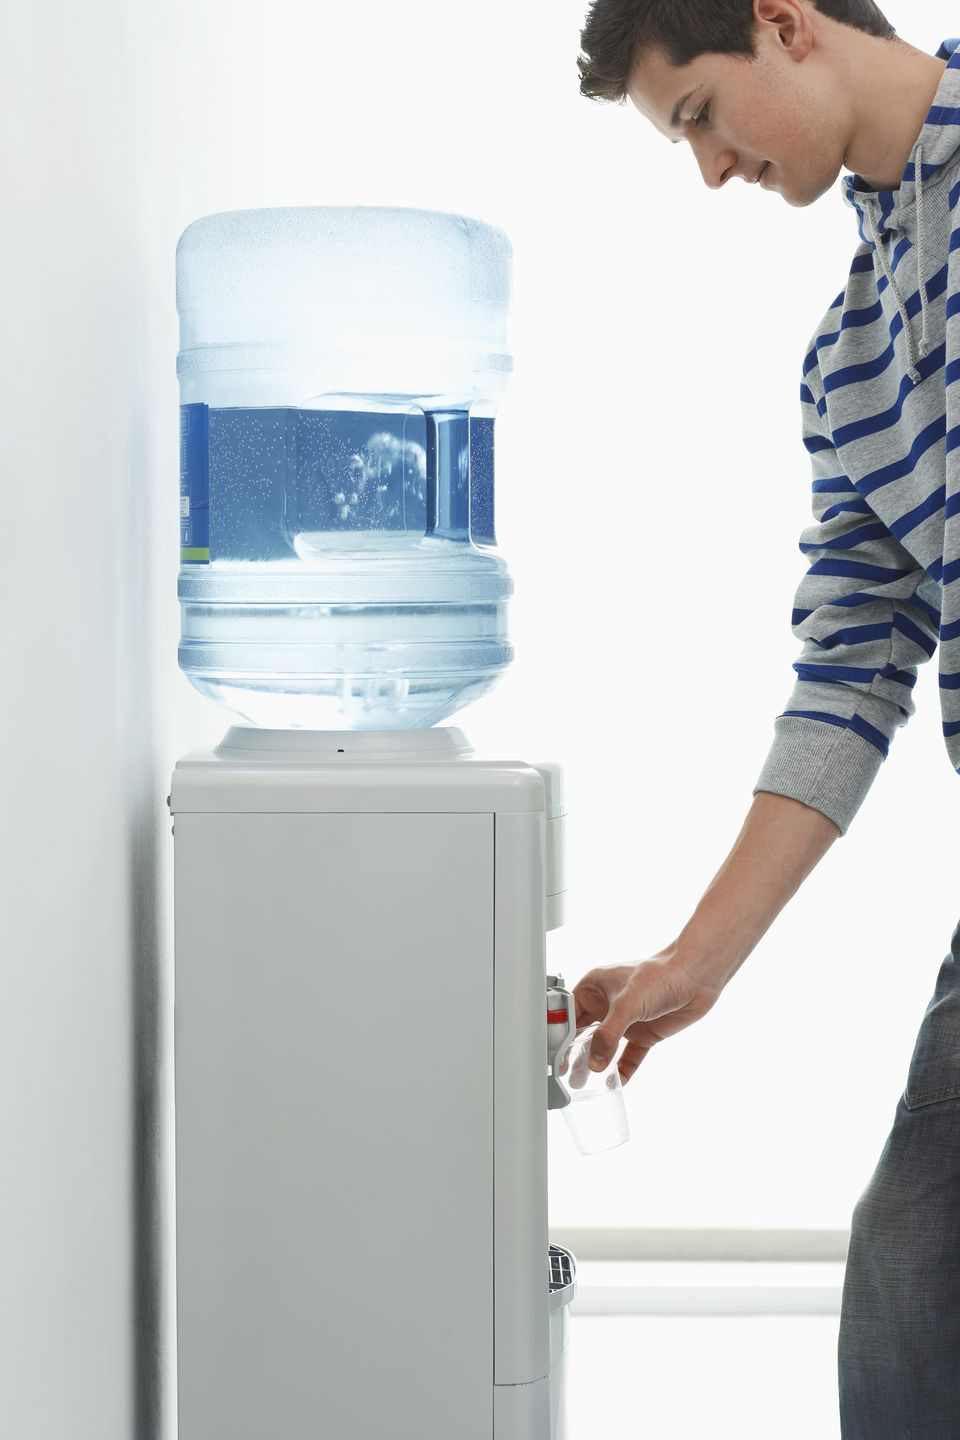 office-worker-using-water-cooler-80719448-58337ec45f9b58d5b1b9b5fa